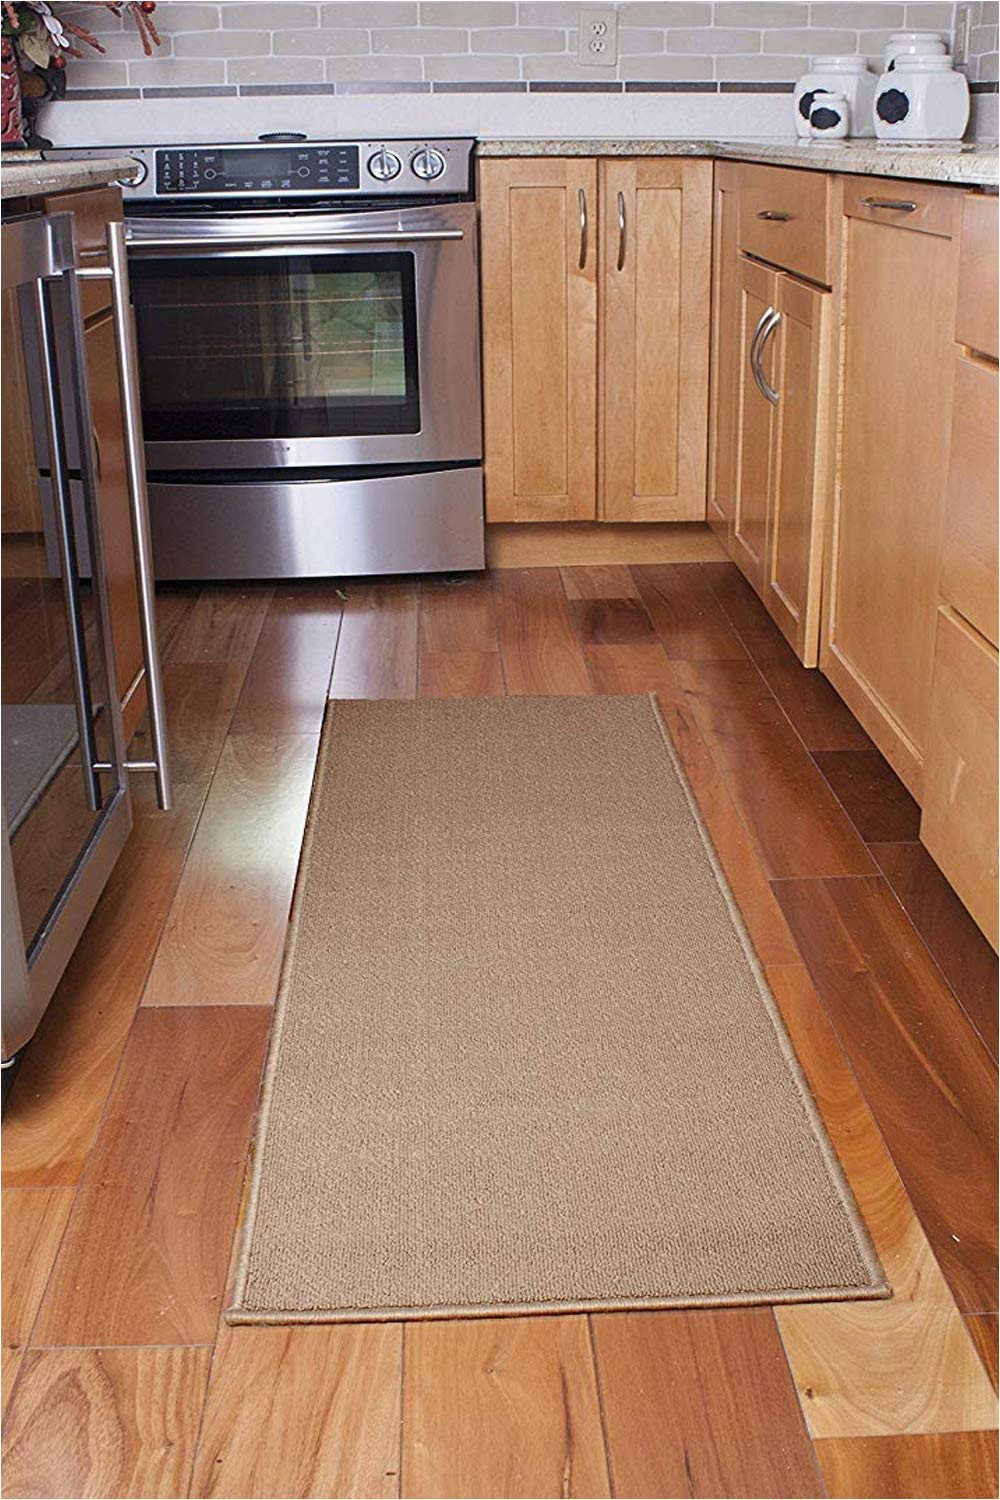 Bath Rug Runner 20 X 60 Cheap 20 X 60 Rug Find 20 X 60 Rug Deals On Line at Alibaba